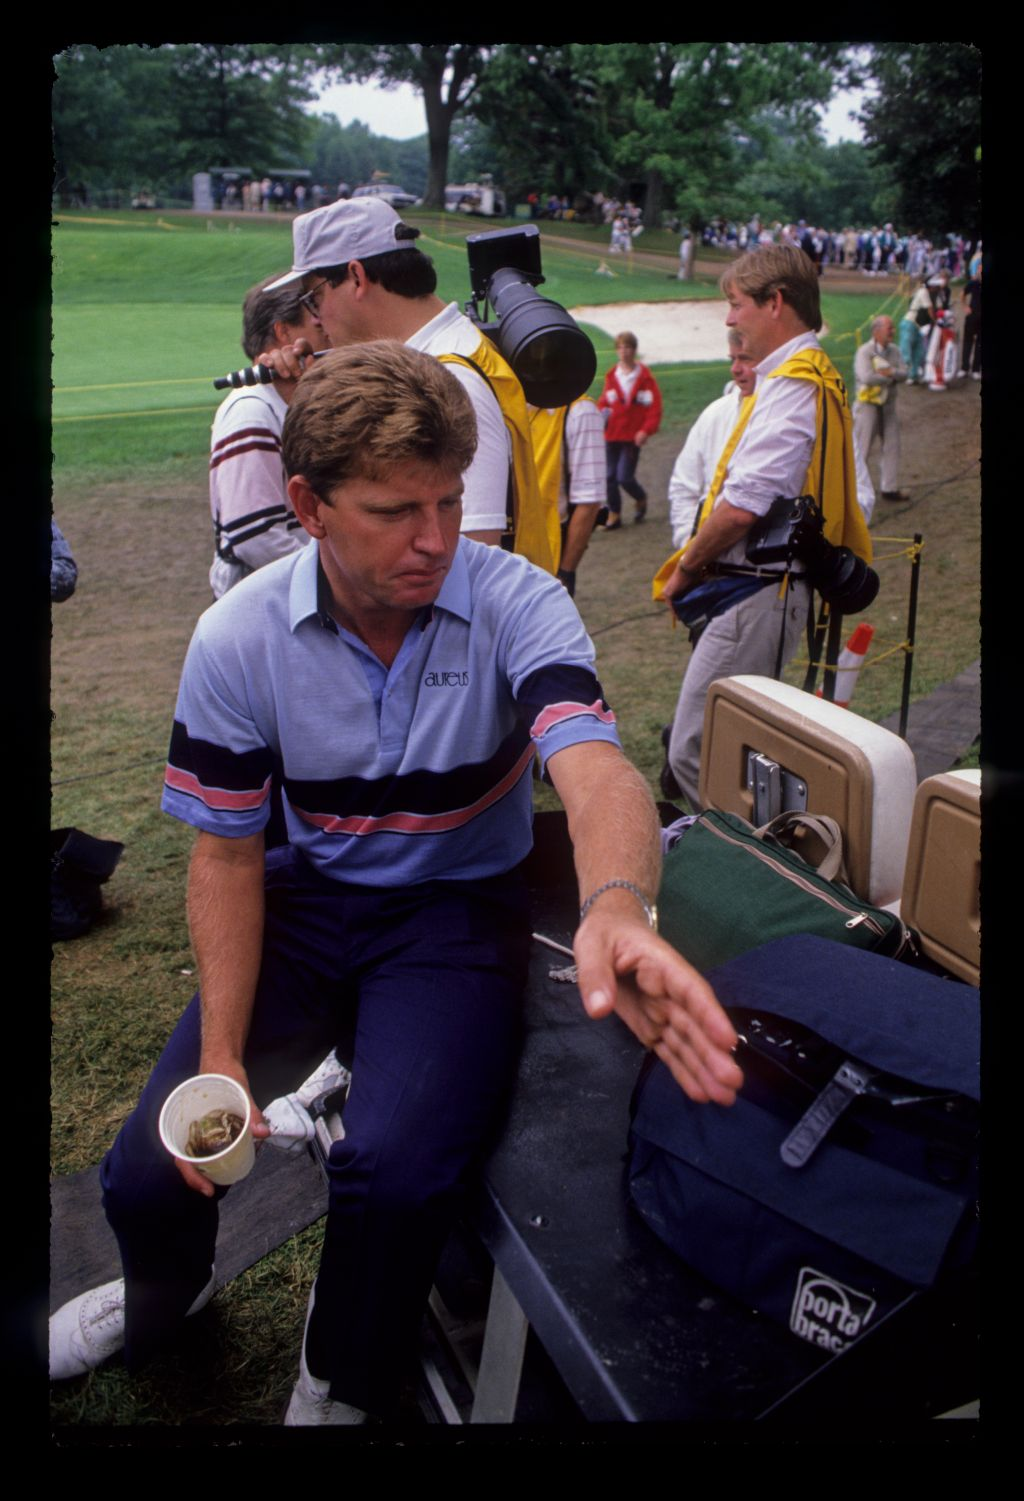 Nick Price taking time out on a buggy during the 1989 US Open